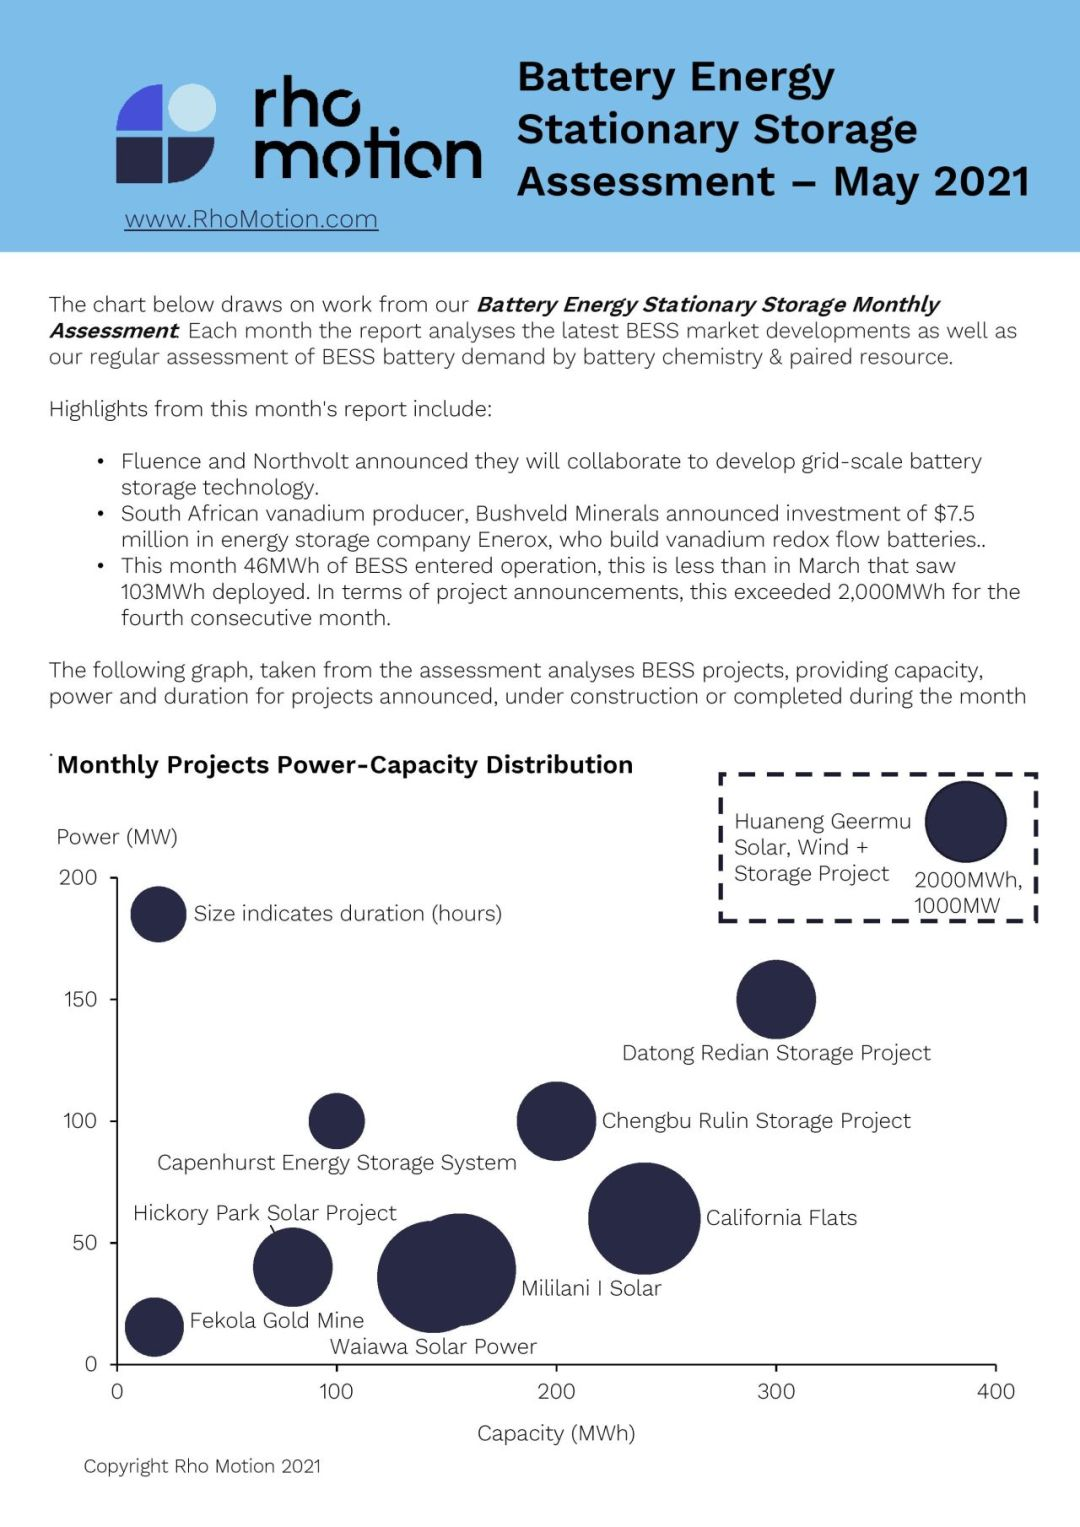 ESS battery energy stationary storage monthly assessment